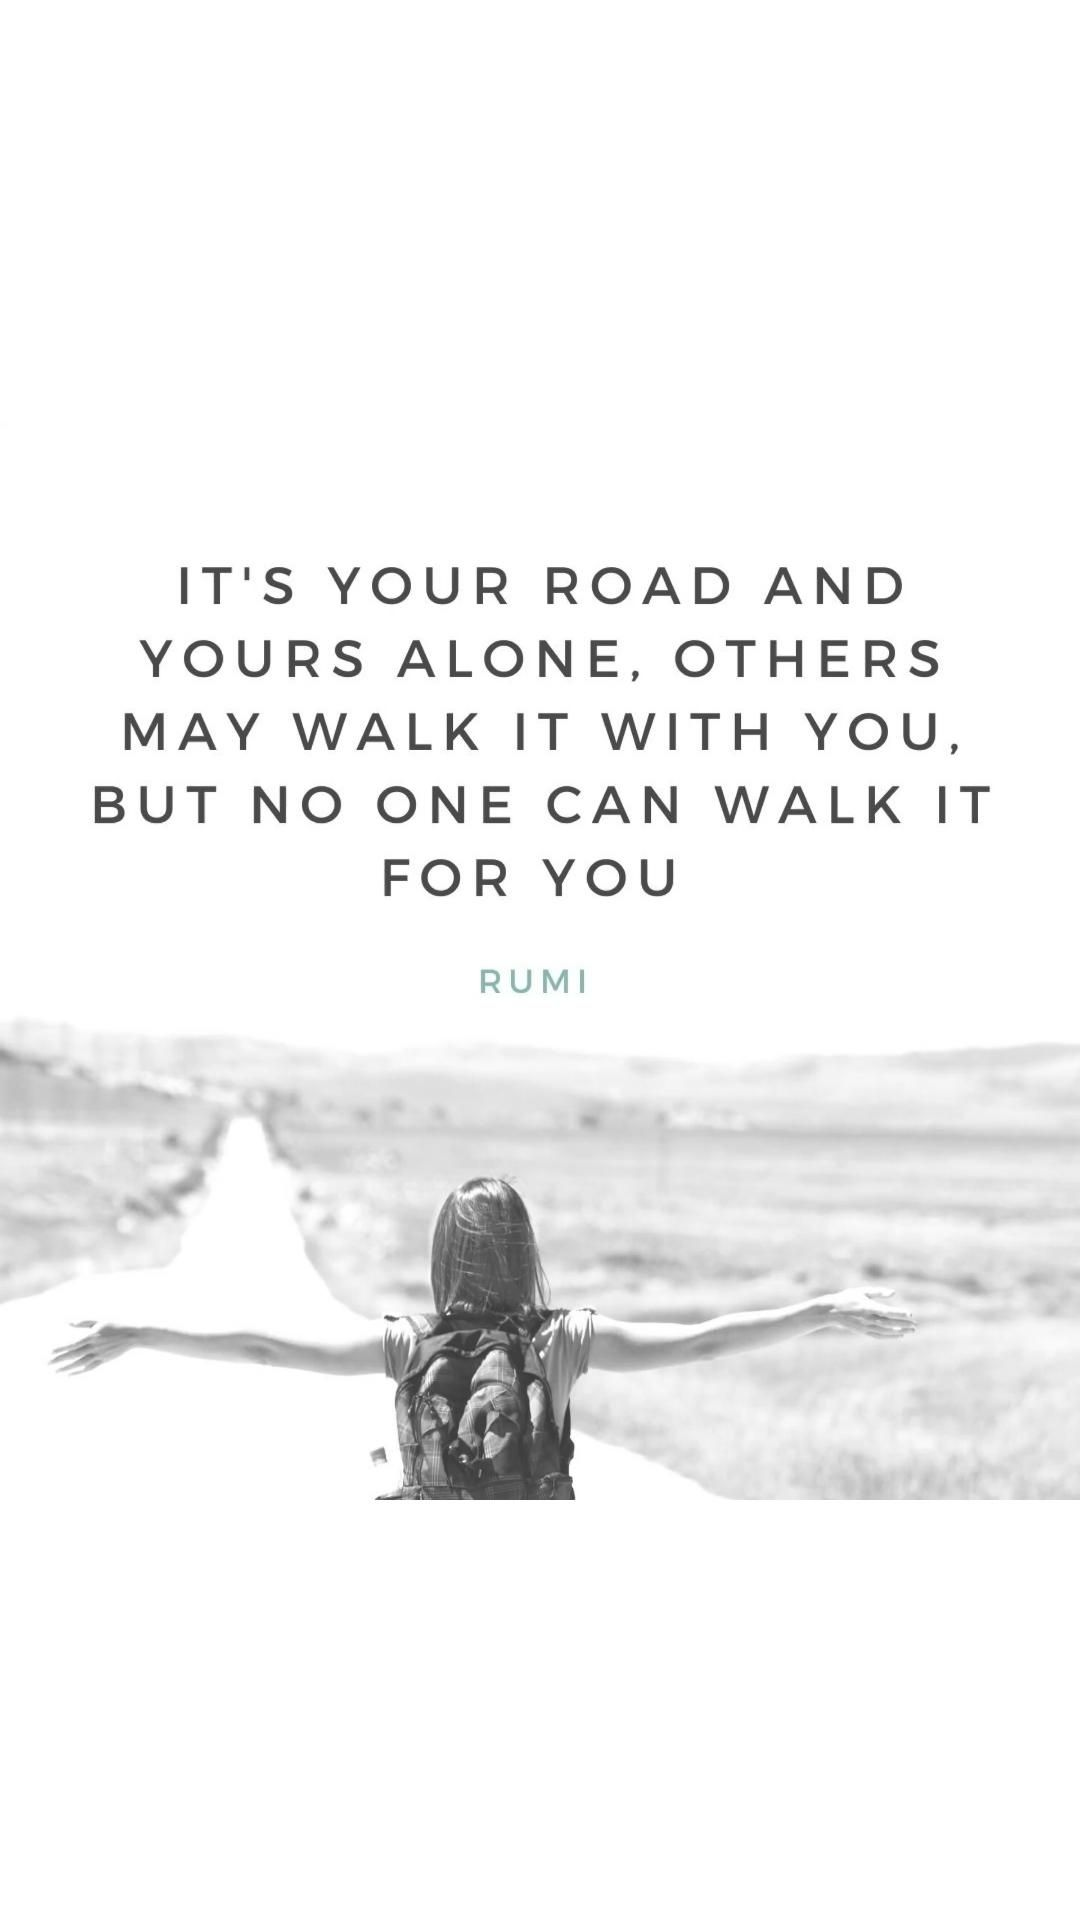 Motivational quotes on following your own path